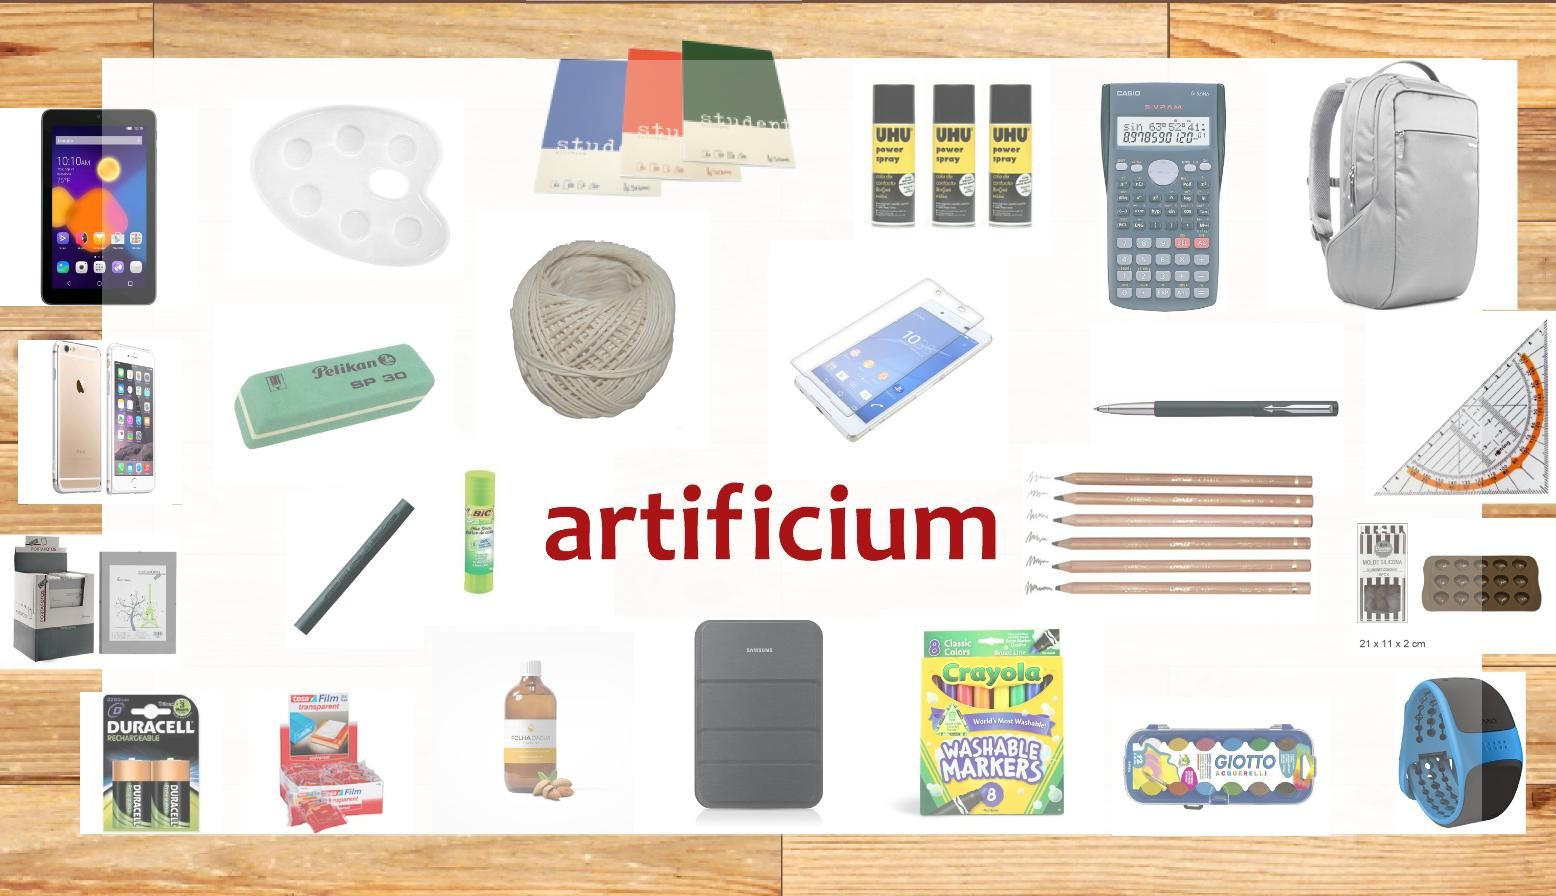 artificium - our products